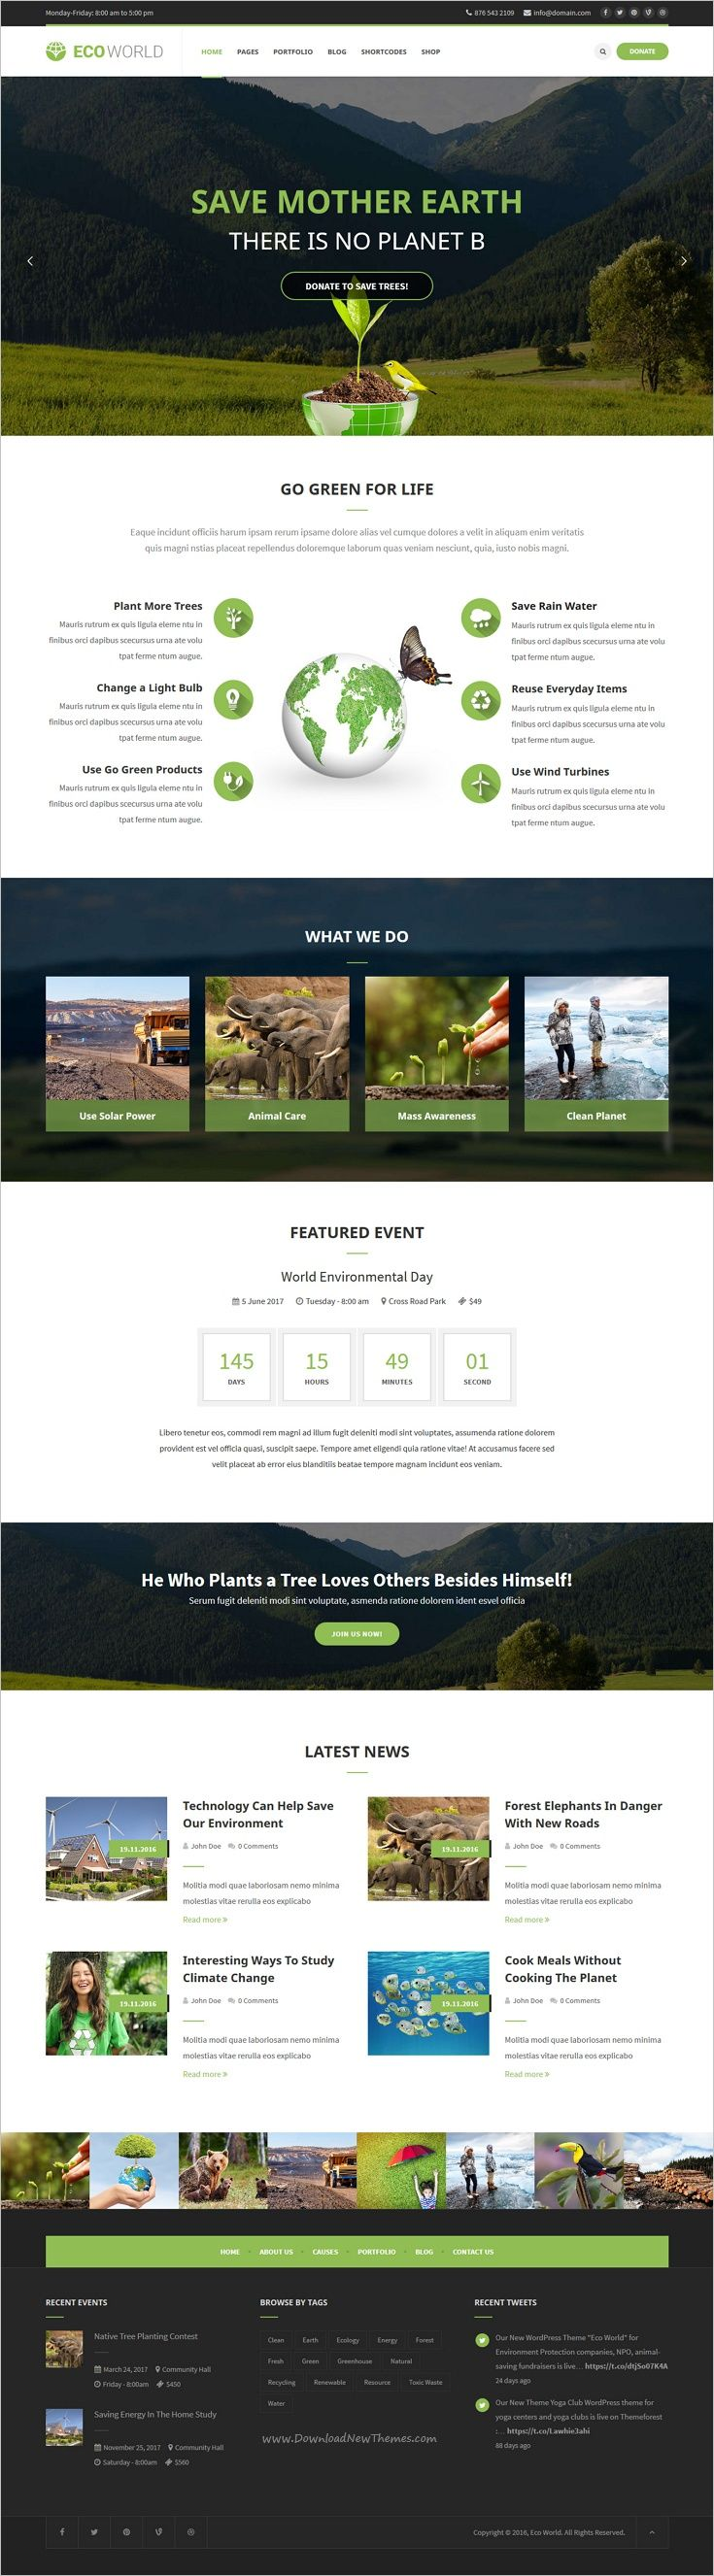 Eco World is a wonderful responsive #WordPress theme for #environment protection companies or nonprofit #organizations website download now➩ https://themeforest.net/item/eco-world-nature-ecology-ngo-wordpress-theme/18967402?ref=Datasata